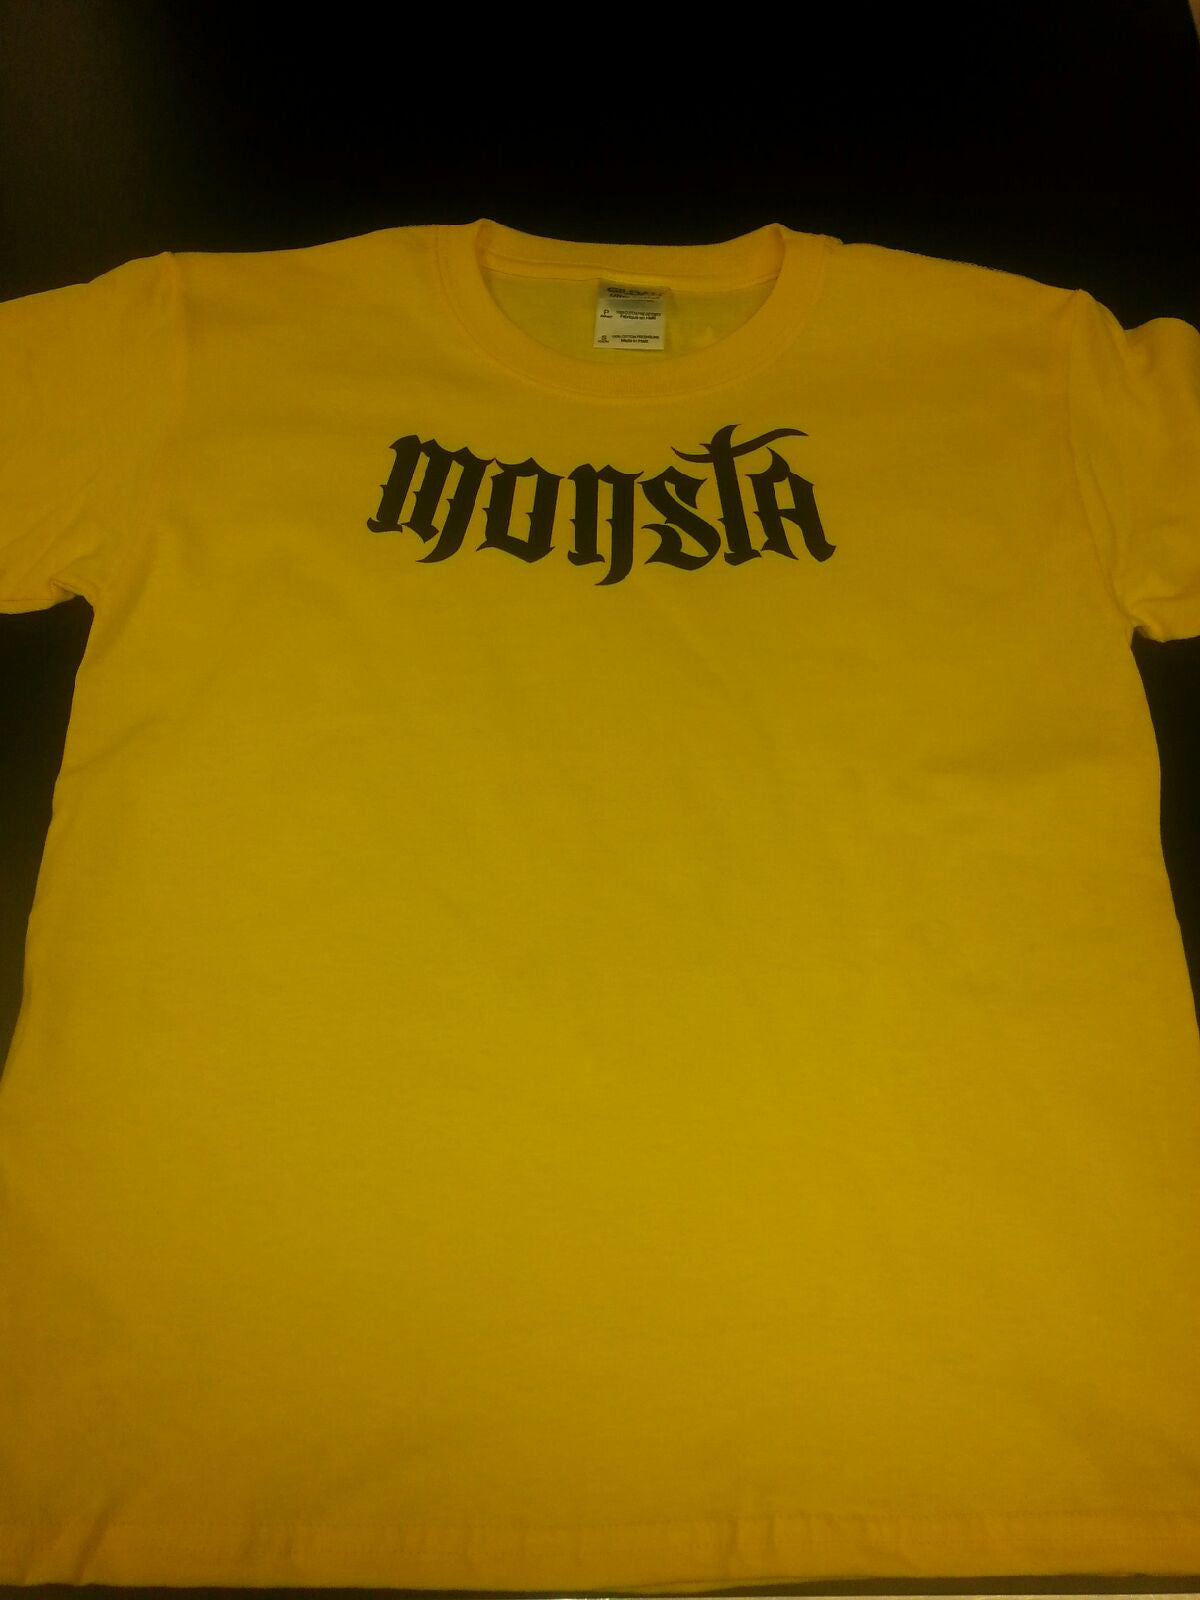 Tee: Children Wear Monsta - Monsta Clothing Australia